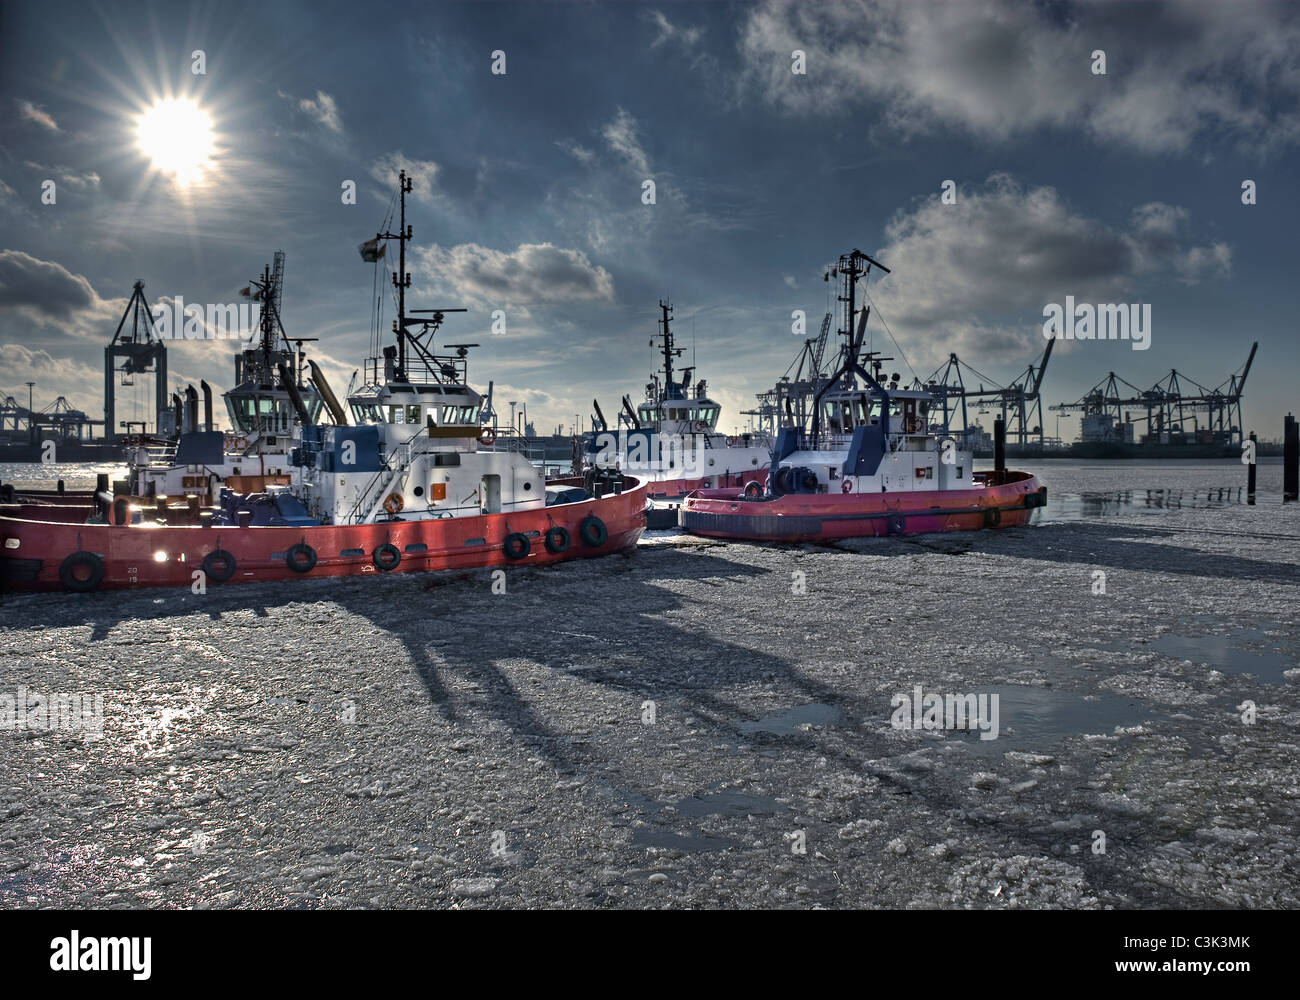 Germany, Hamburg, View of tugs moored at harbour on frozen water - Stock Image